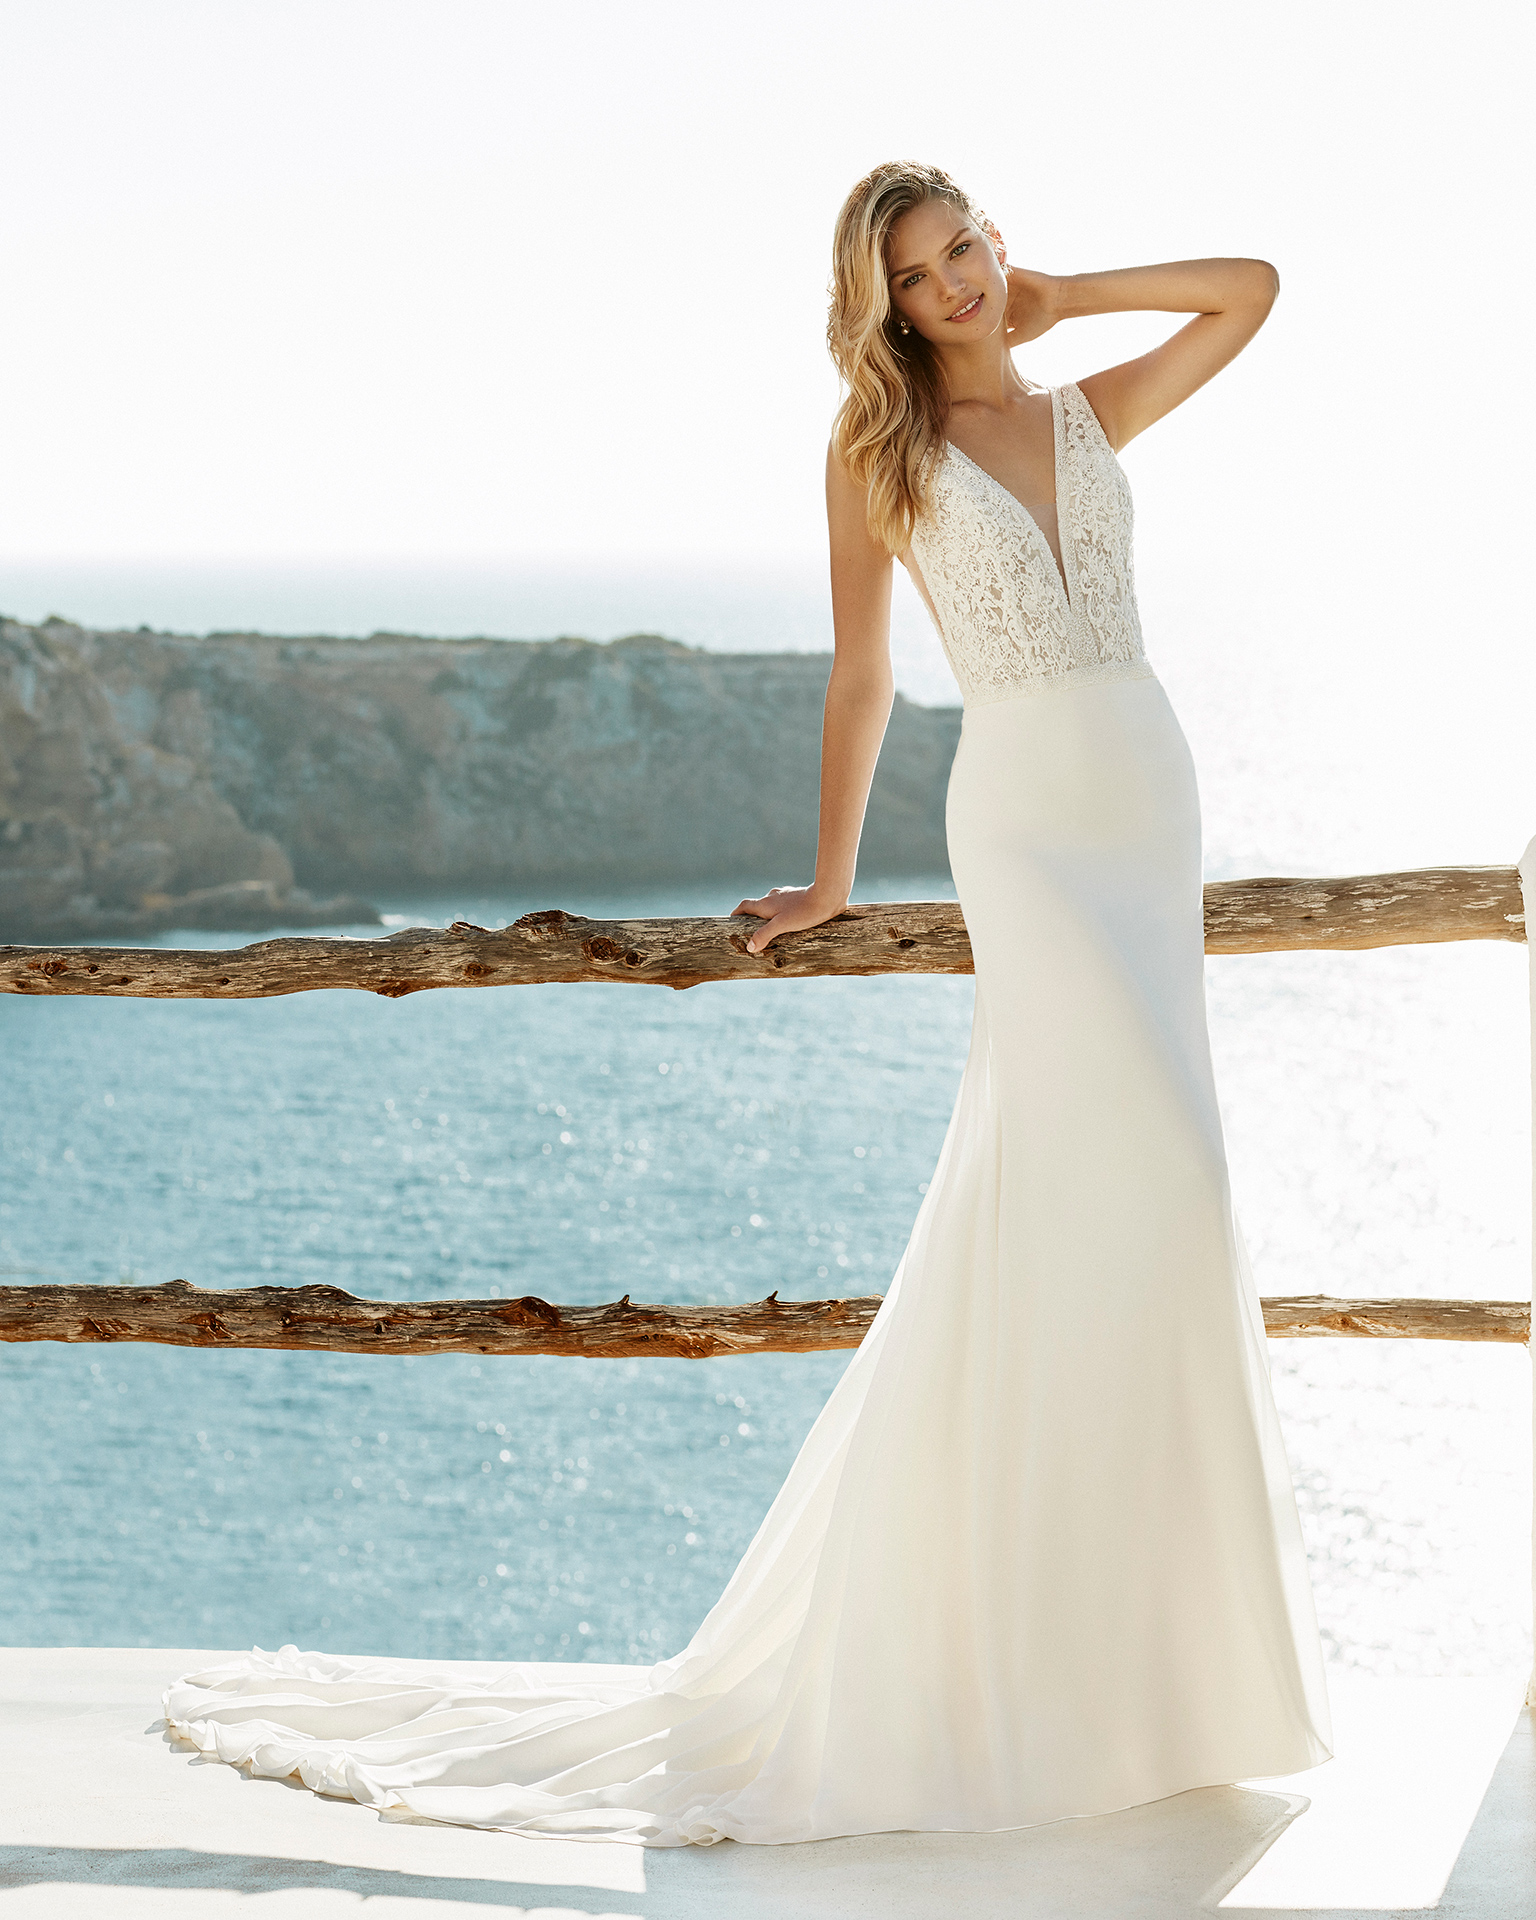 Robe de mariée coupe droite en gaze et dentelle avec pierreries. Décolleté plongeant et décolleté dans le dos. Disponible en couleur naturelle. Collection AIRE BEACH WEDDING 2019.